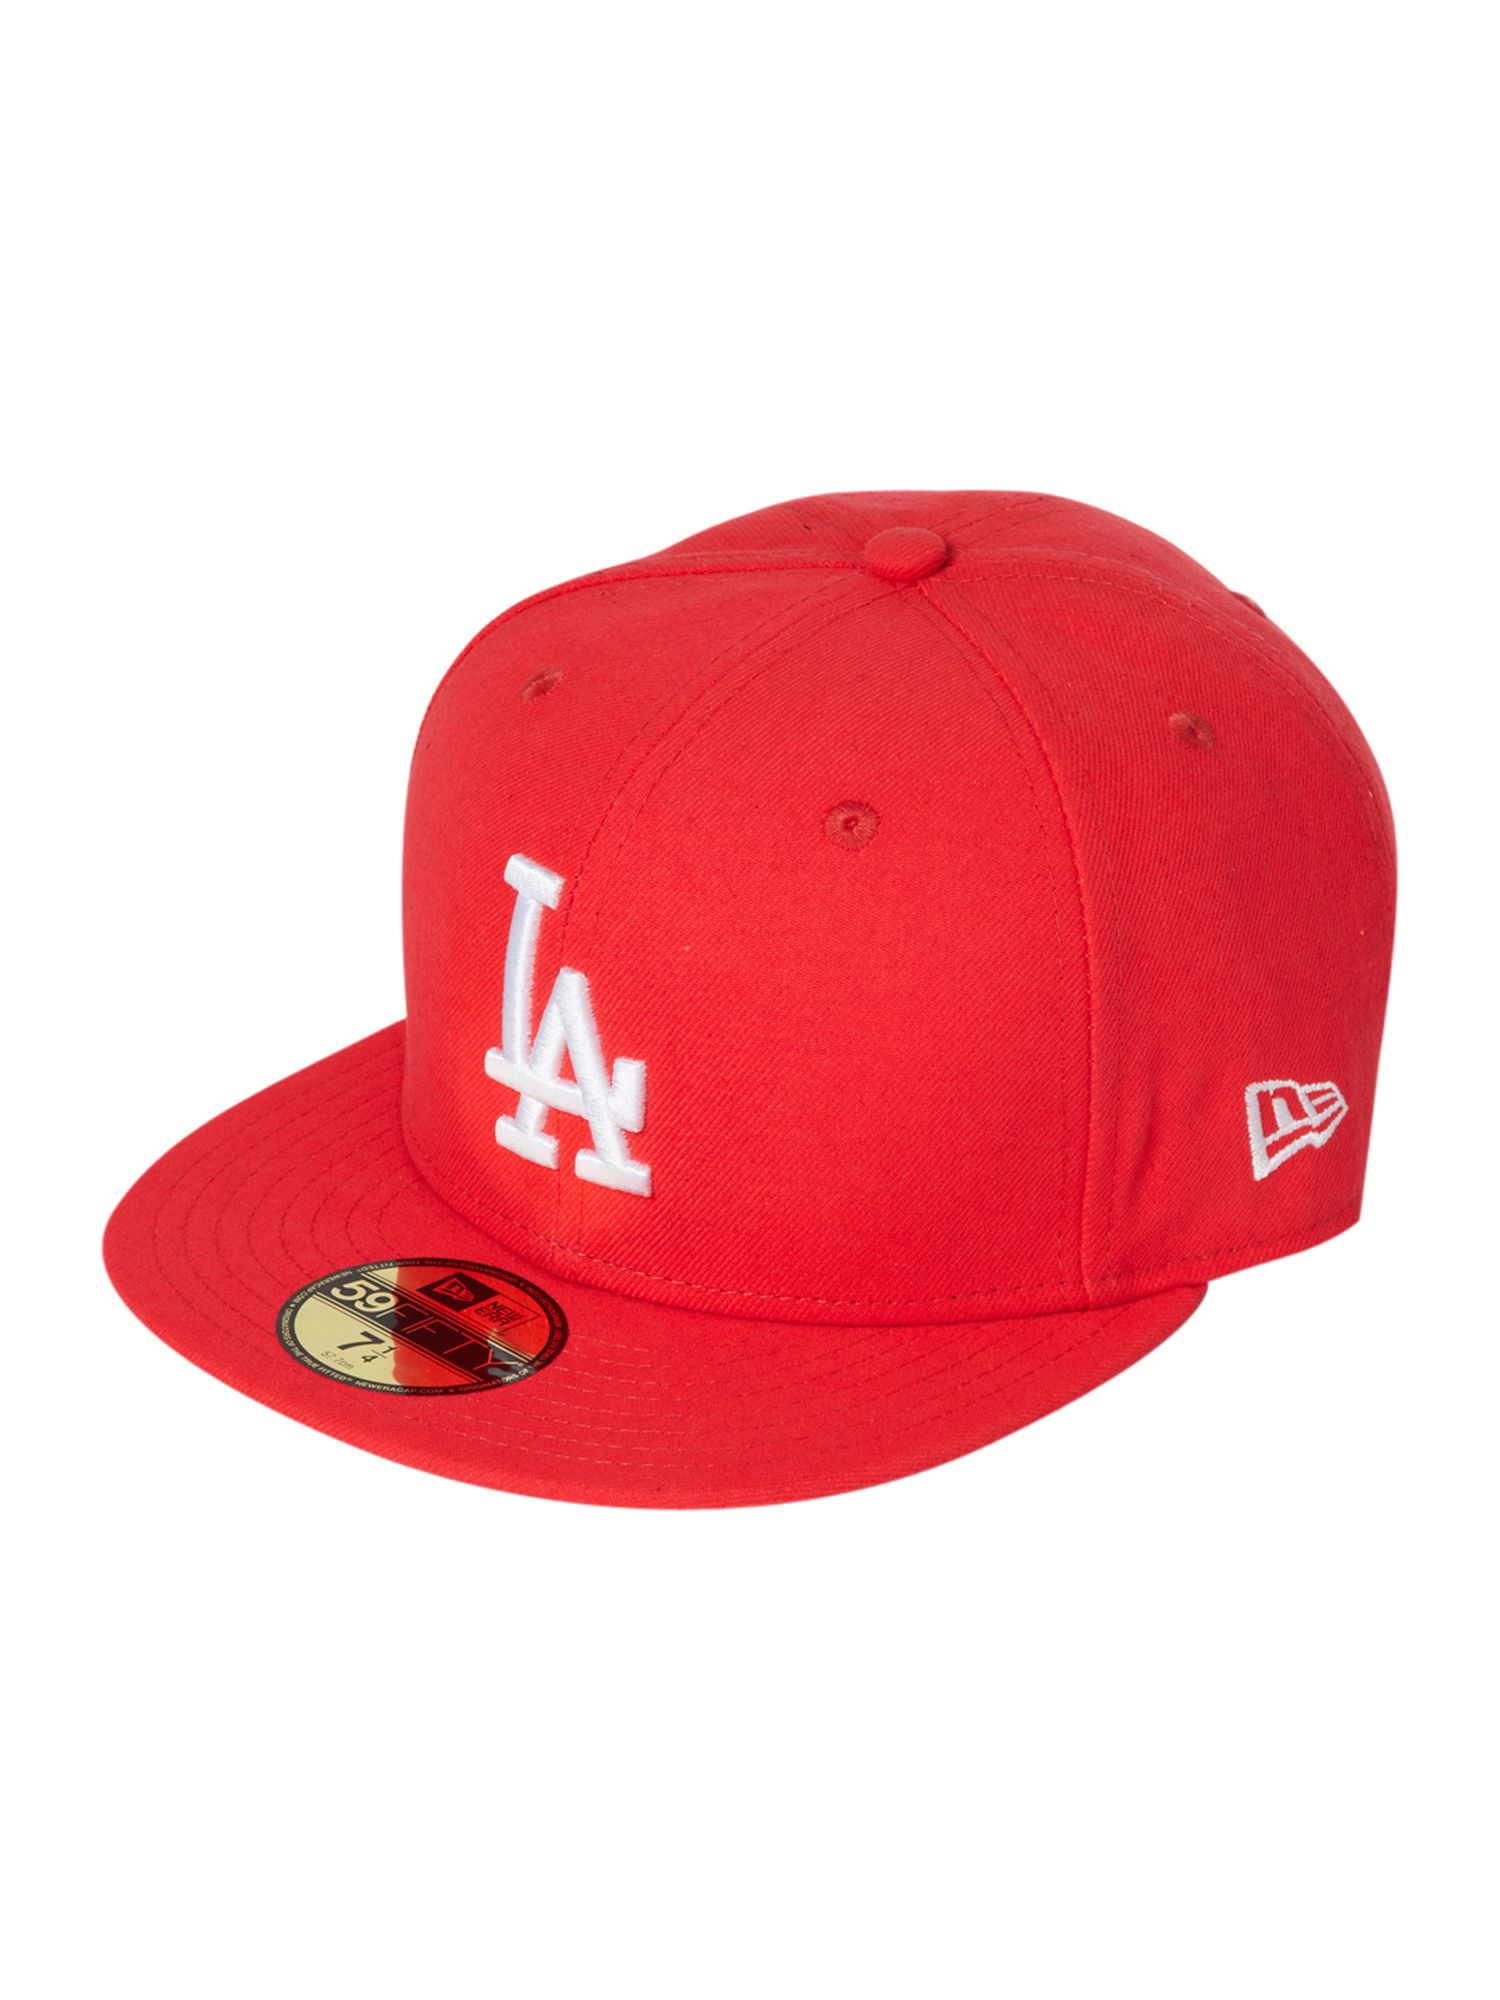 New Era LA dodgers 59 fifty baseball cap - Red product image